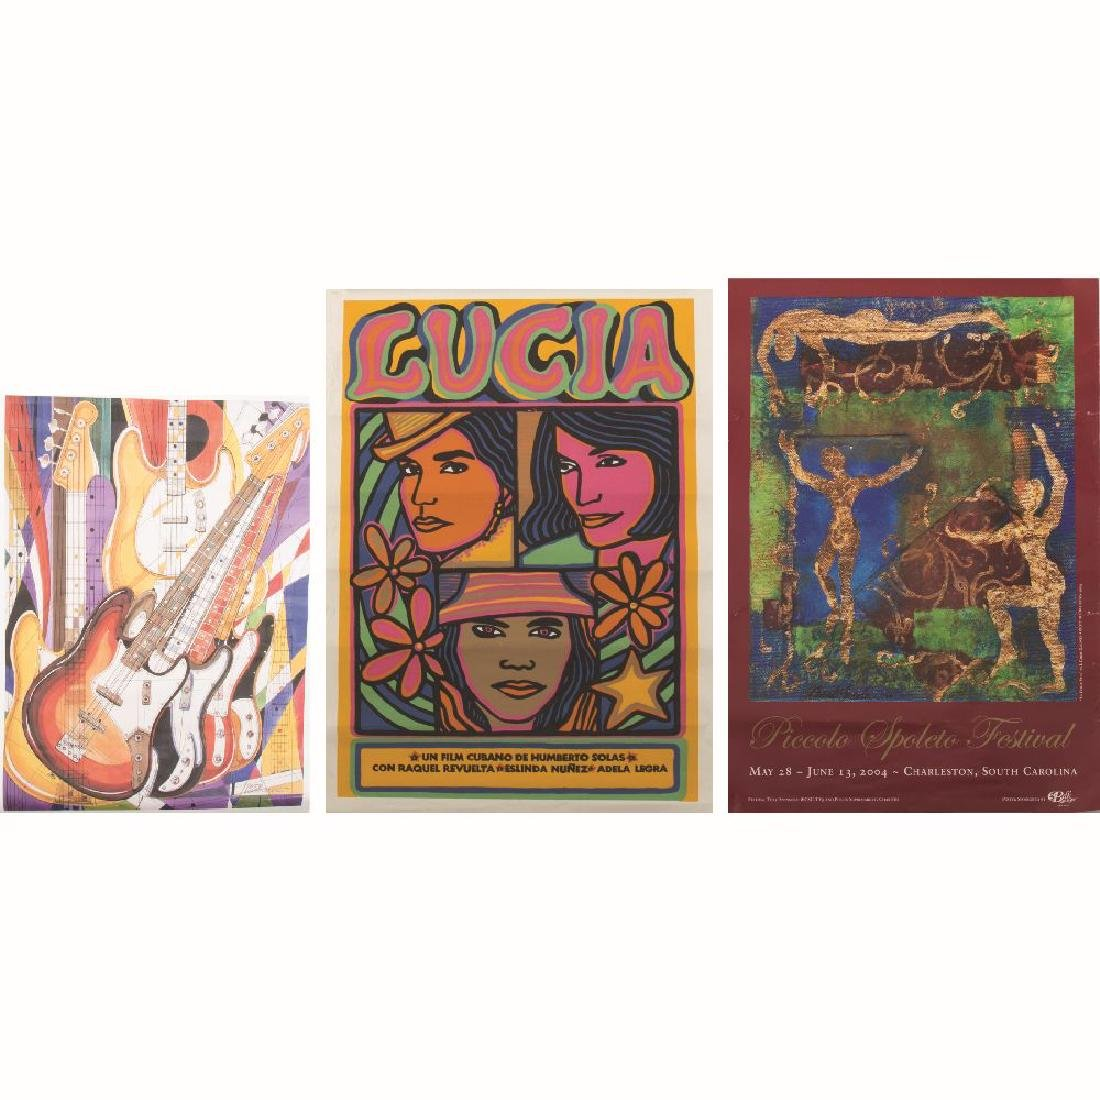 A Group of Three Lithographic Exhibition Posters by